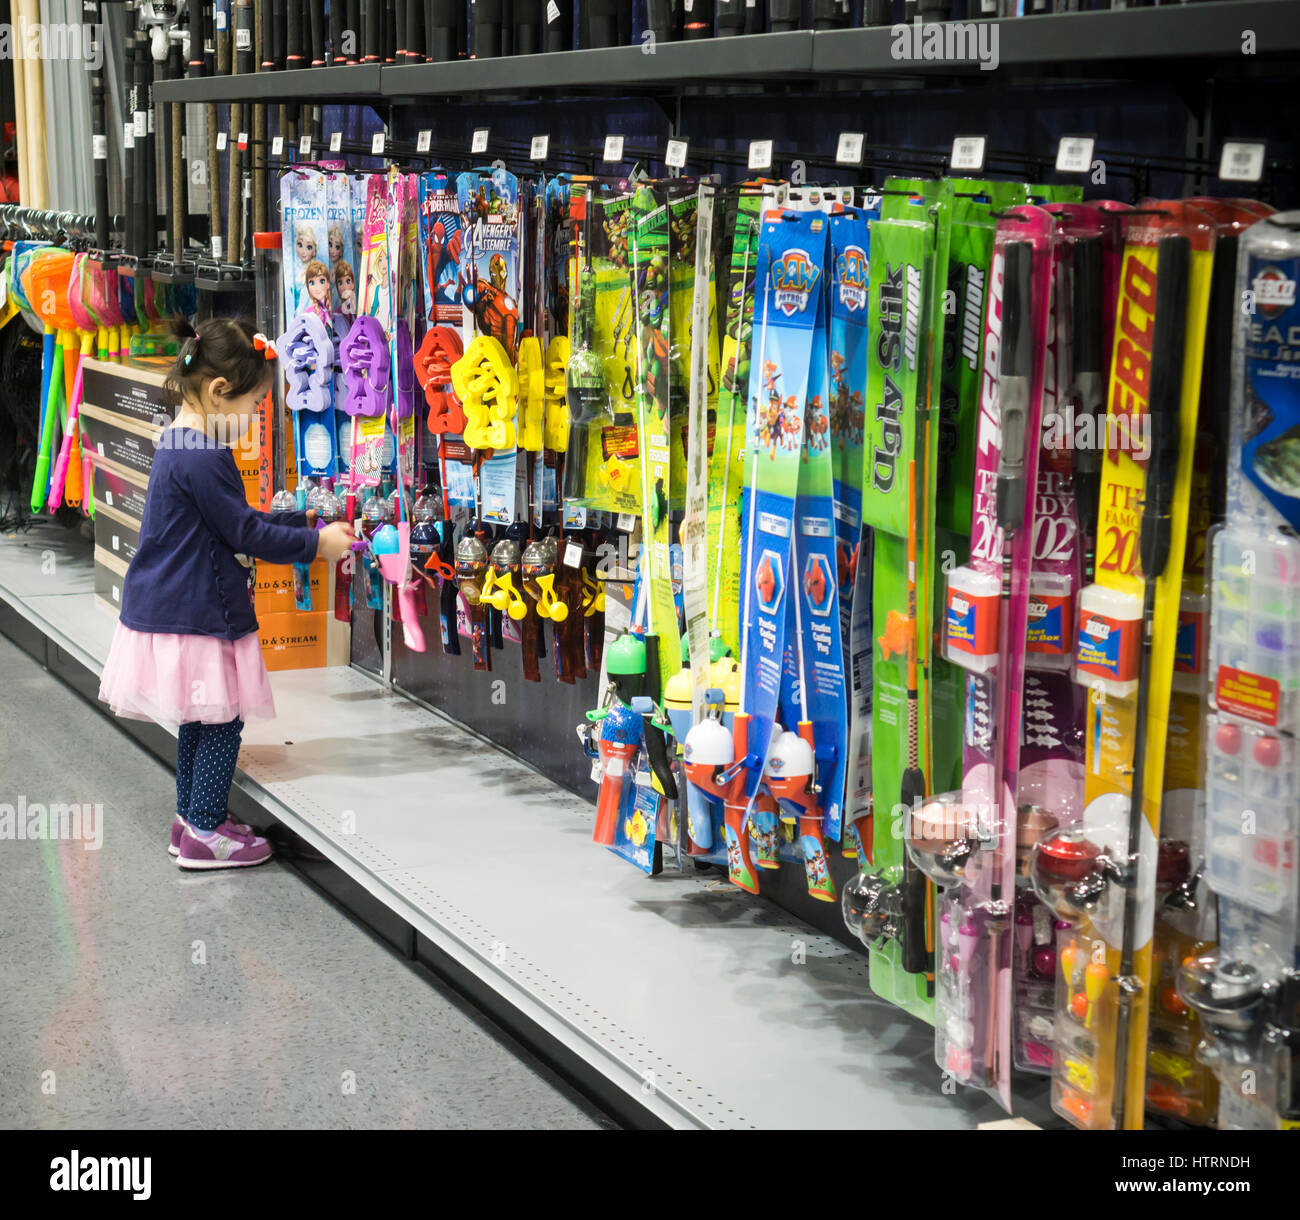 a03b9803df A child inspects childrens  fishing equipment in the new Dick s Sporting  Goods store in the